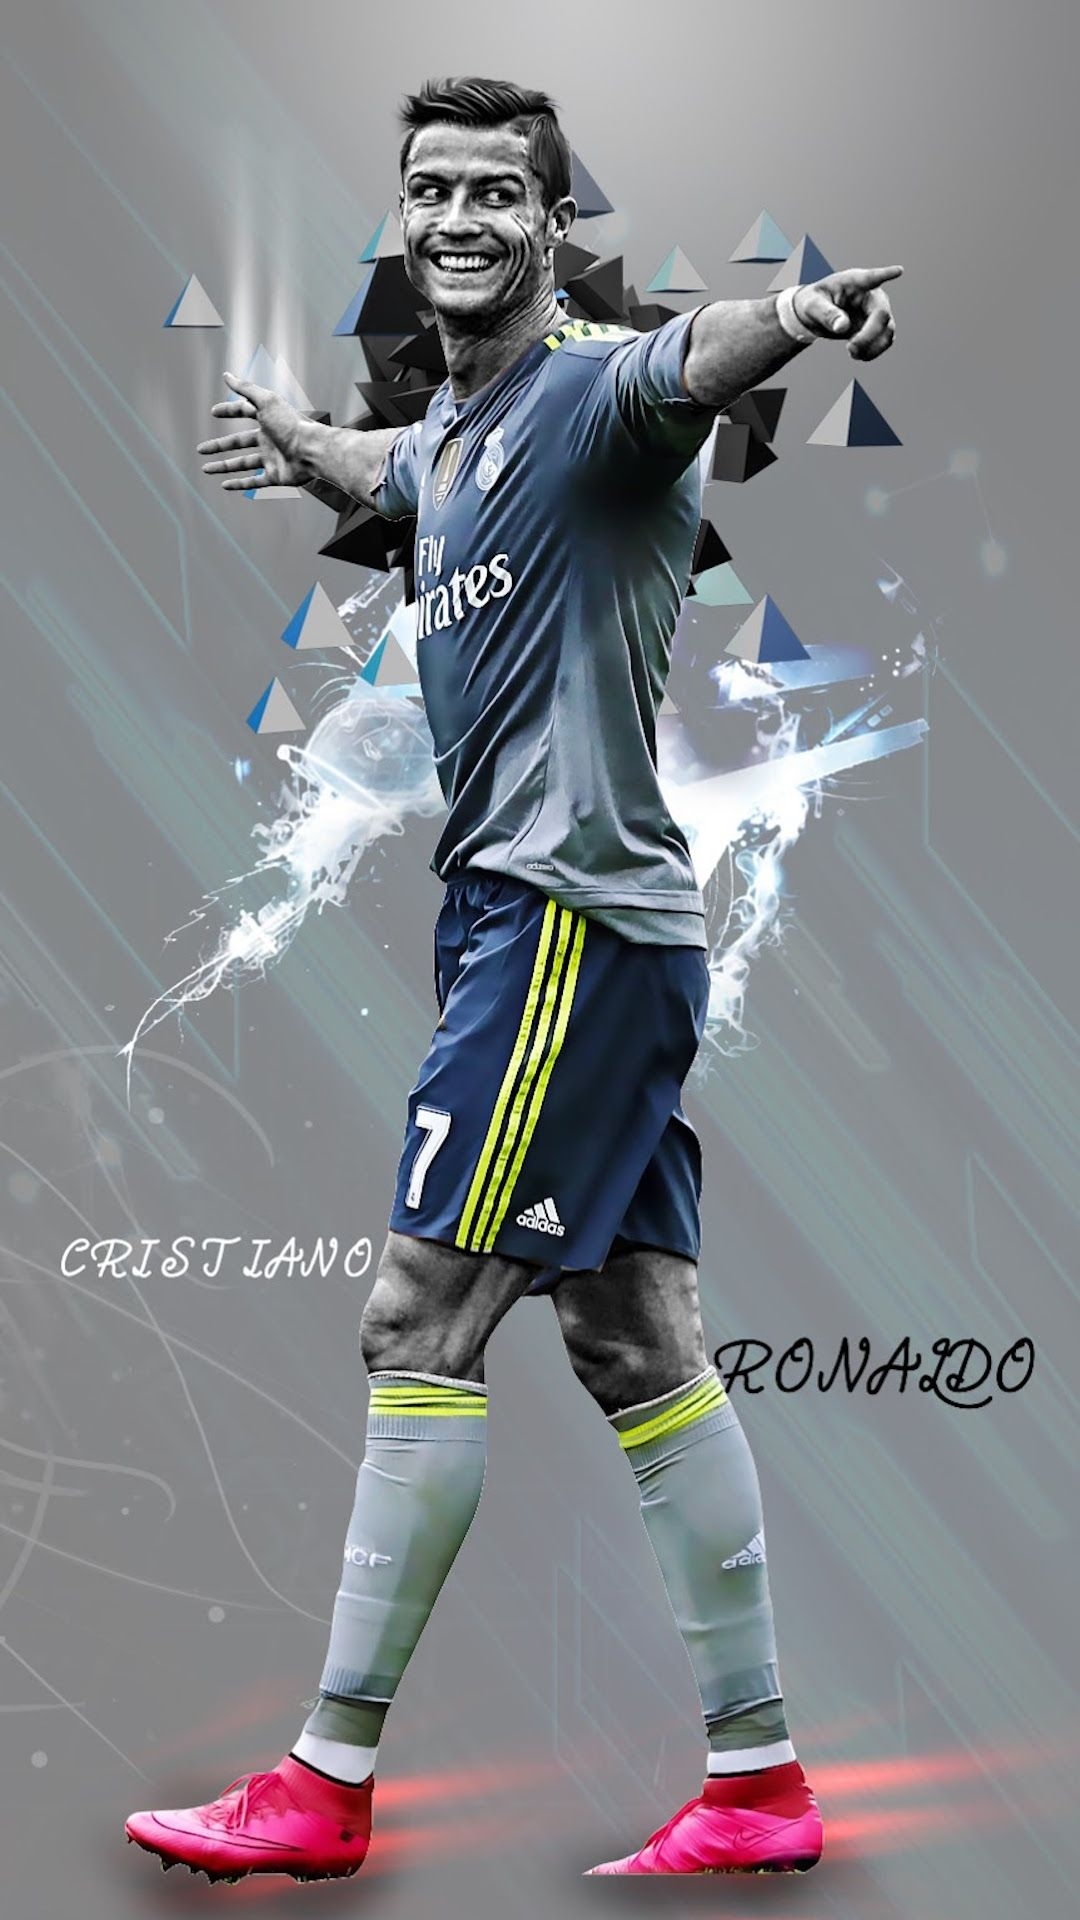 Cristiano Ronaldo iPhone Wallpaper HD Криштиану роналду